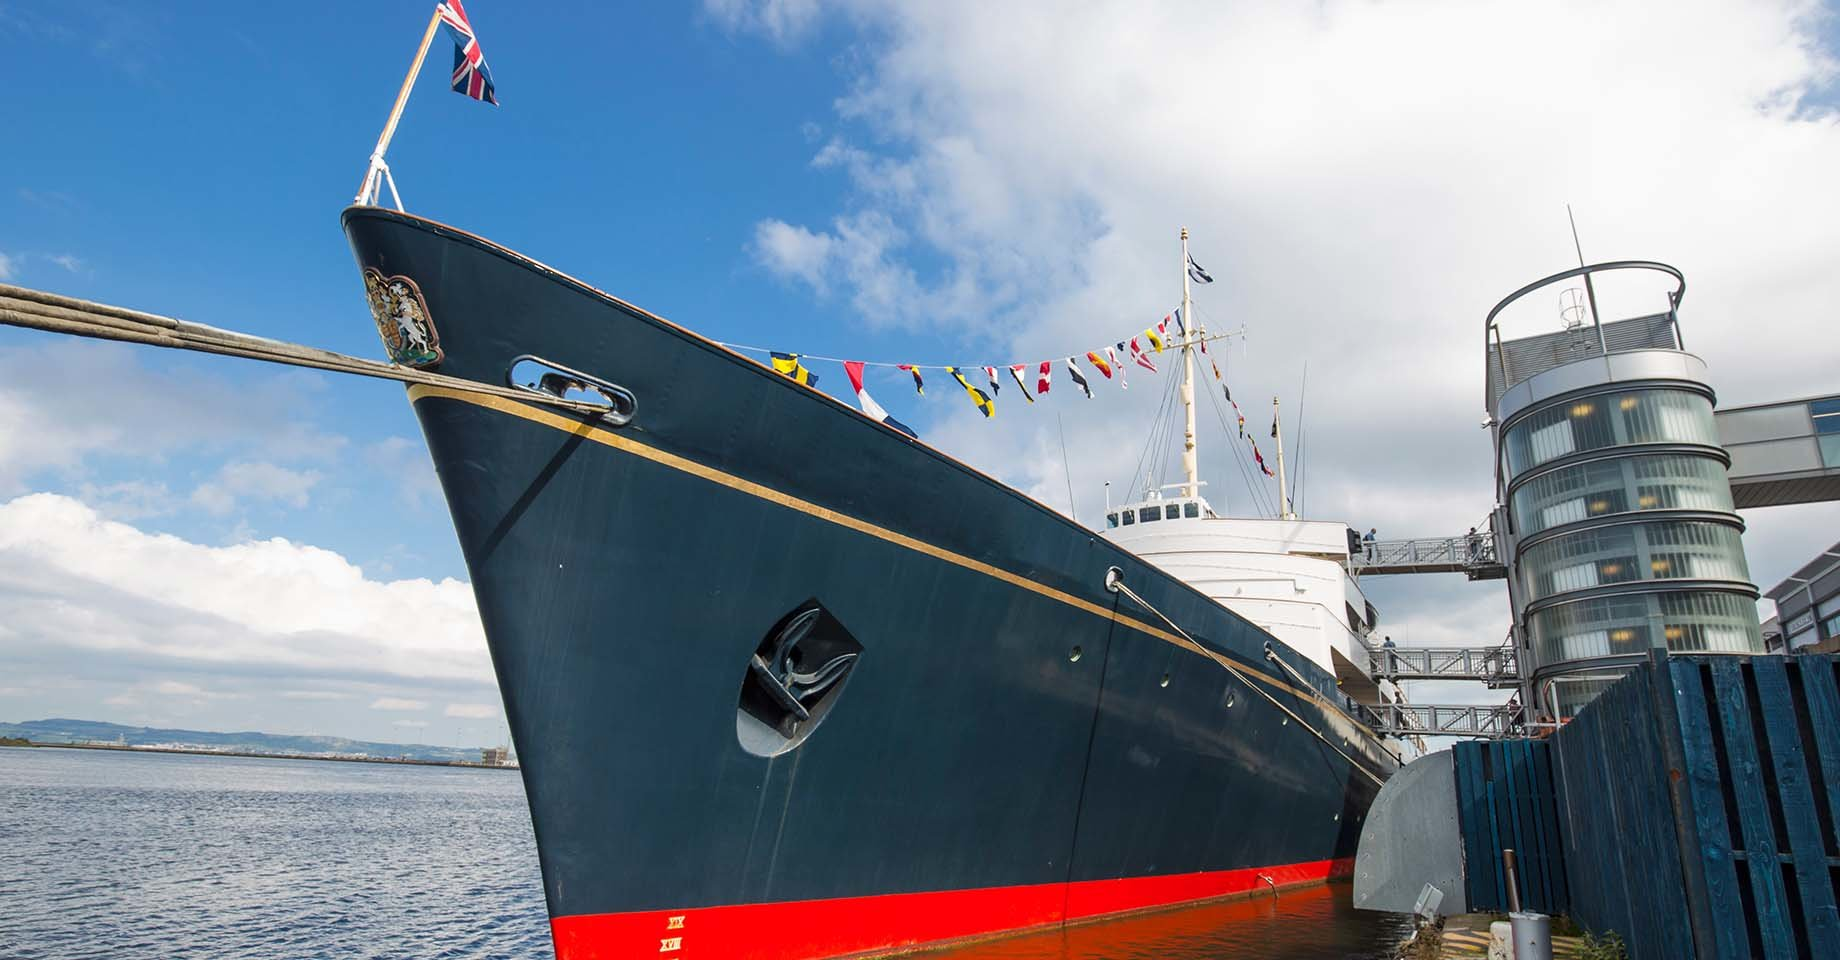 The Royal Yacht, Britannia, one of the world's most famous ships